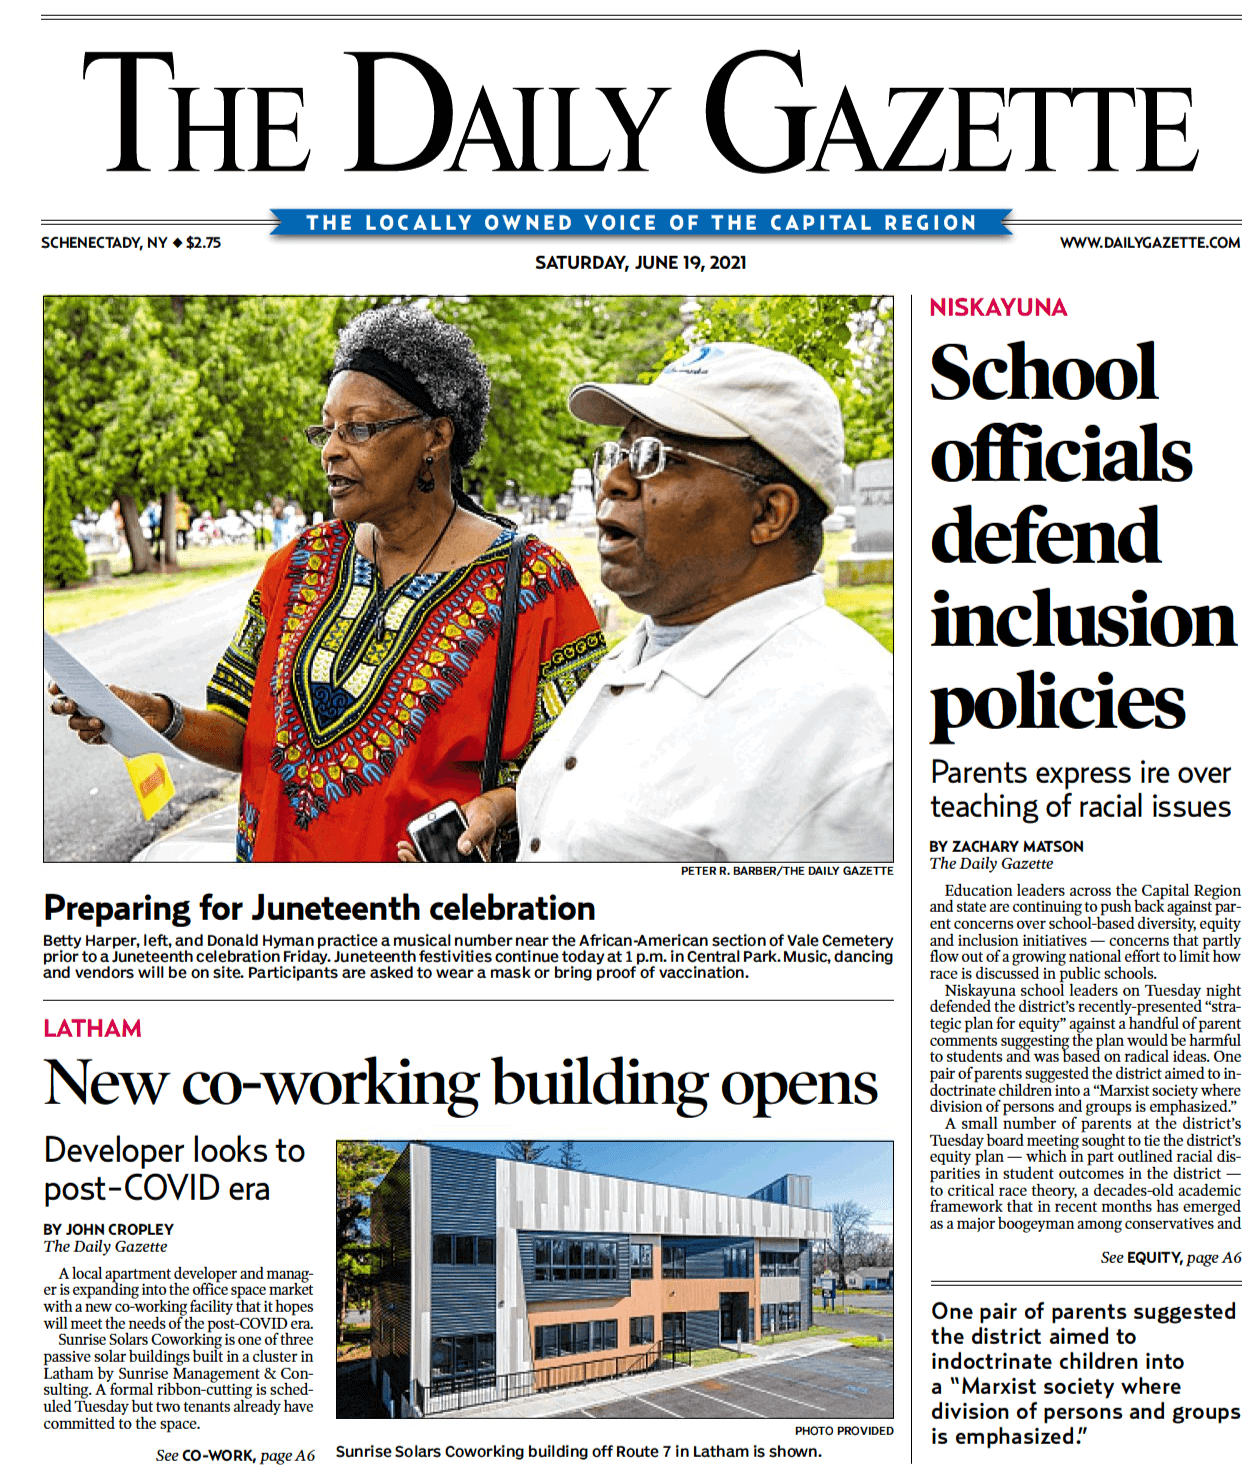 Sunrise Solars Coworking on the cover of the Daily Gazette